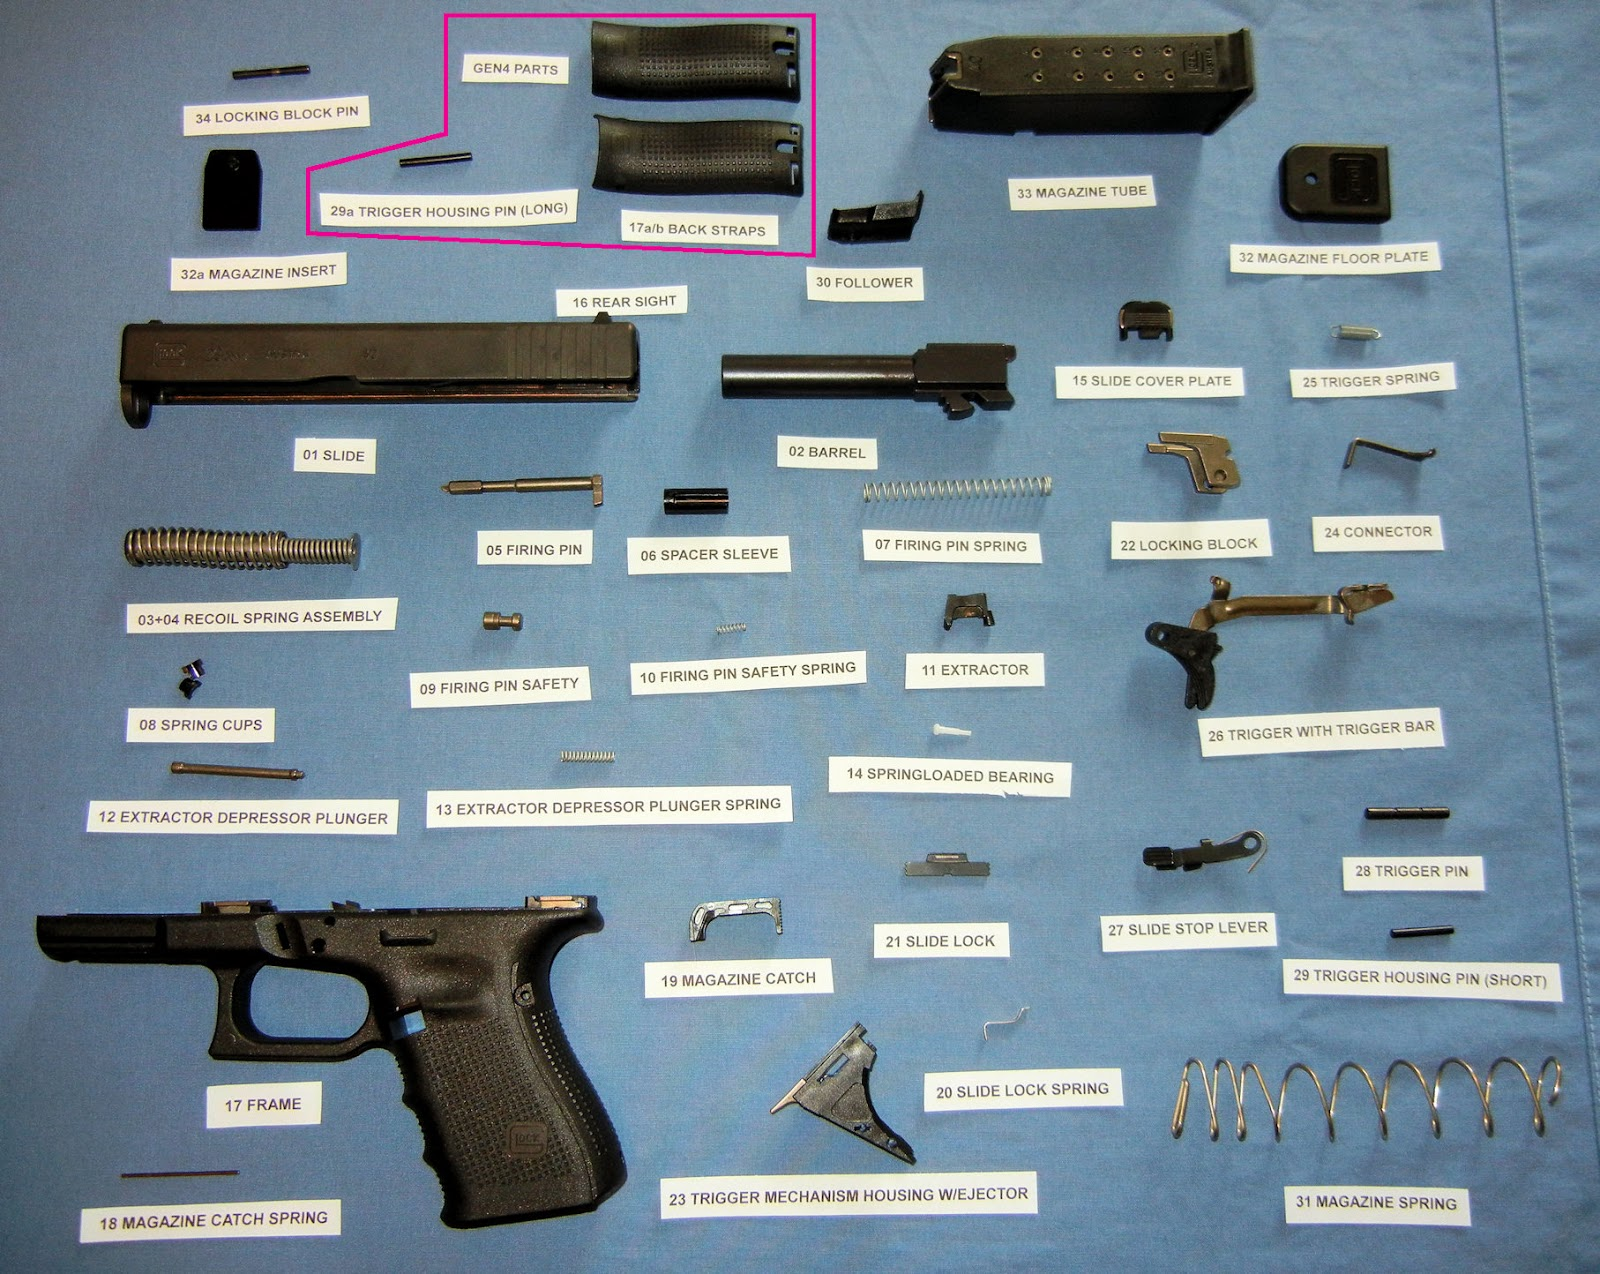 Glock pistol parts diagram color coded, showing frame pins, springs,  magazine assembly, and lubrication points.